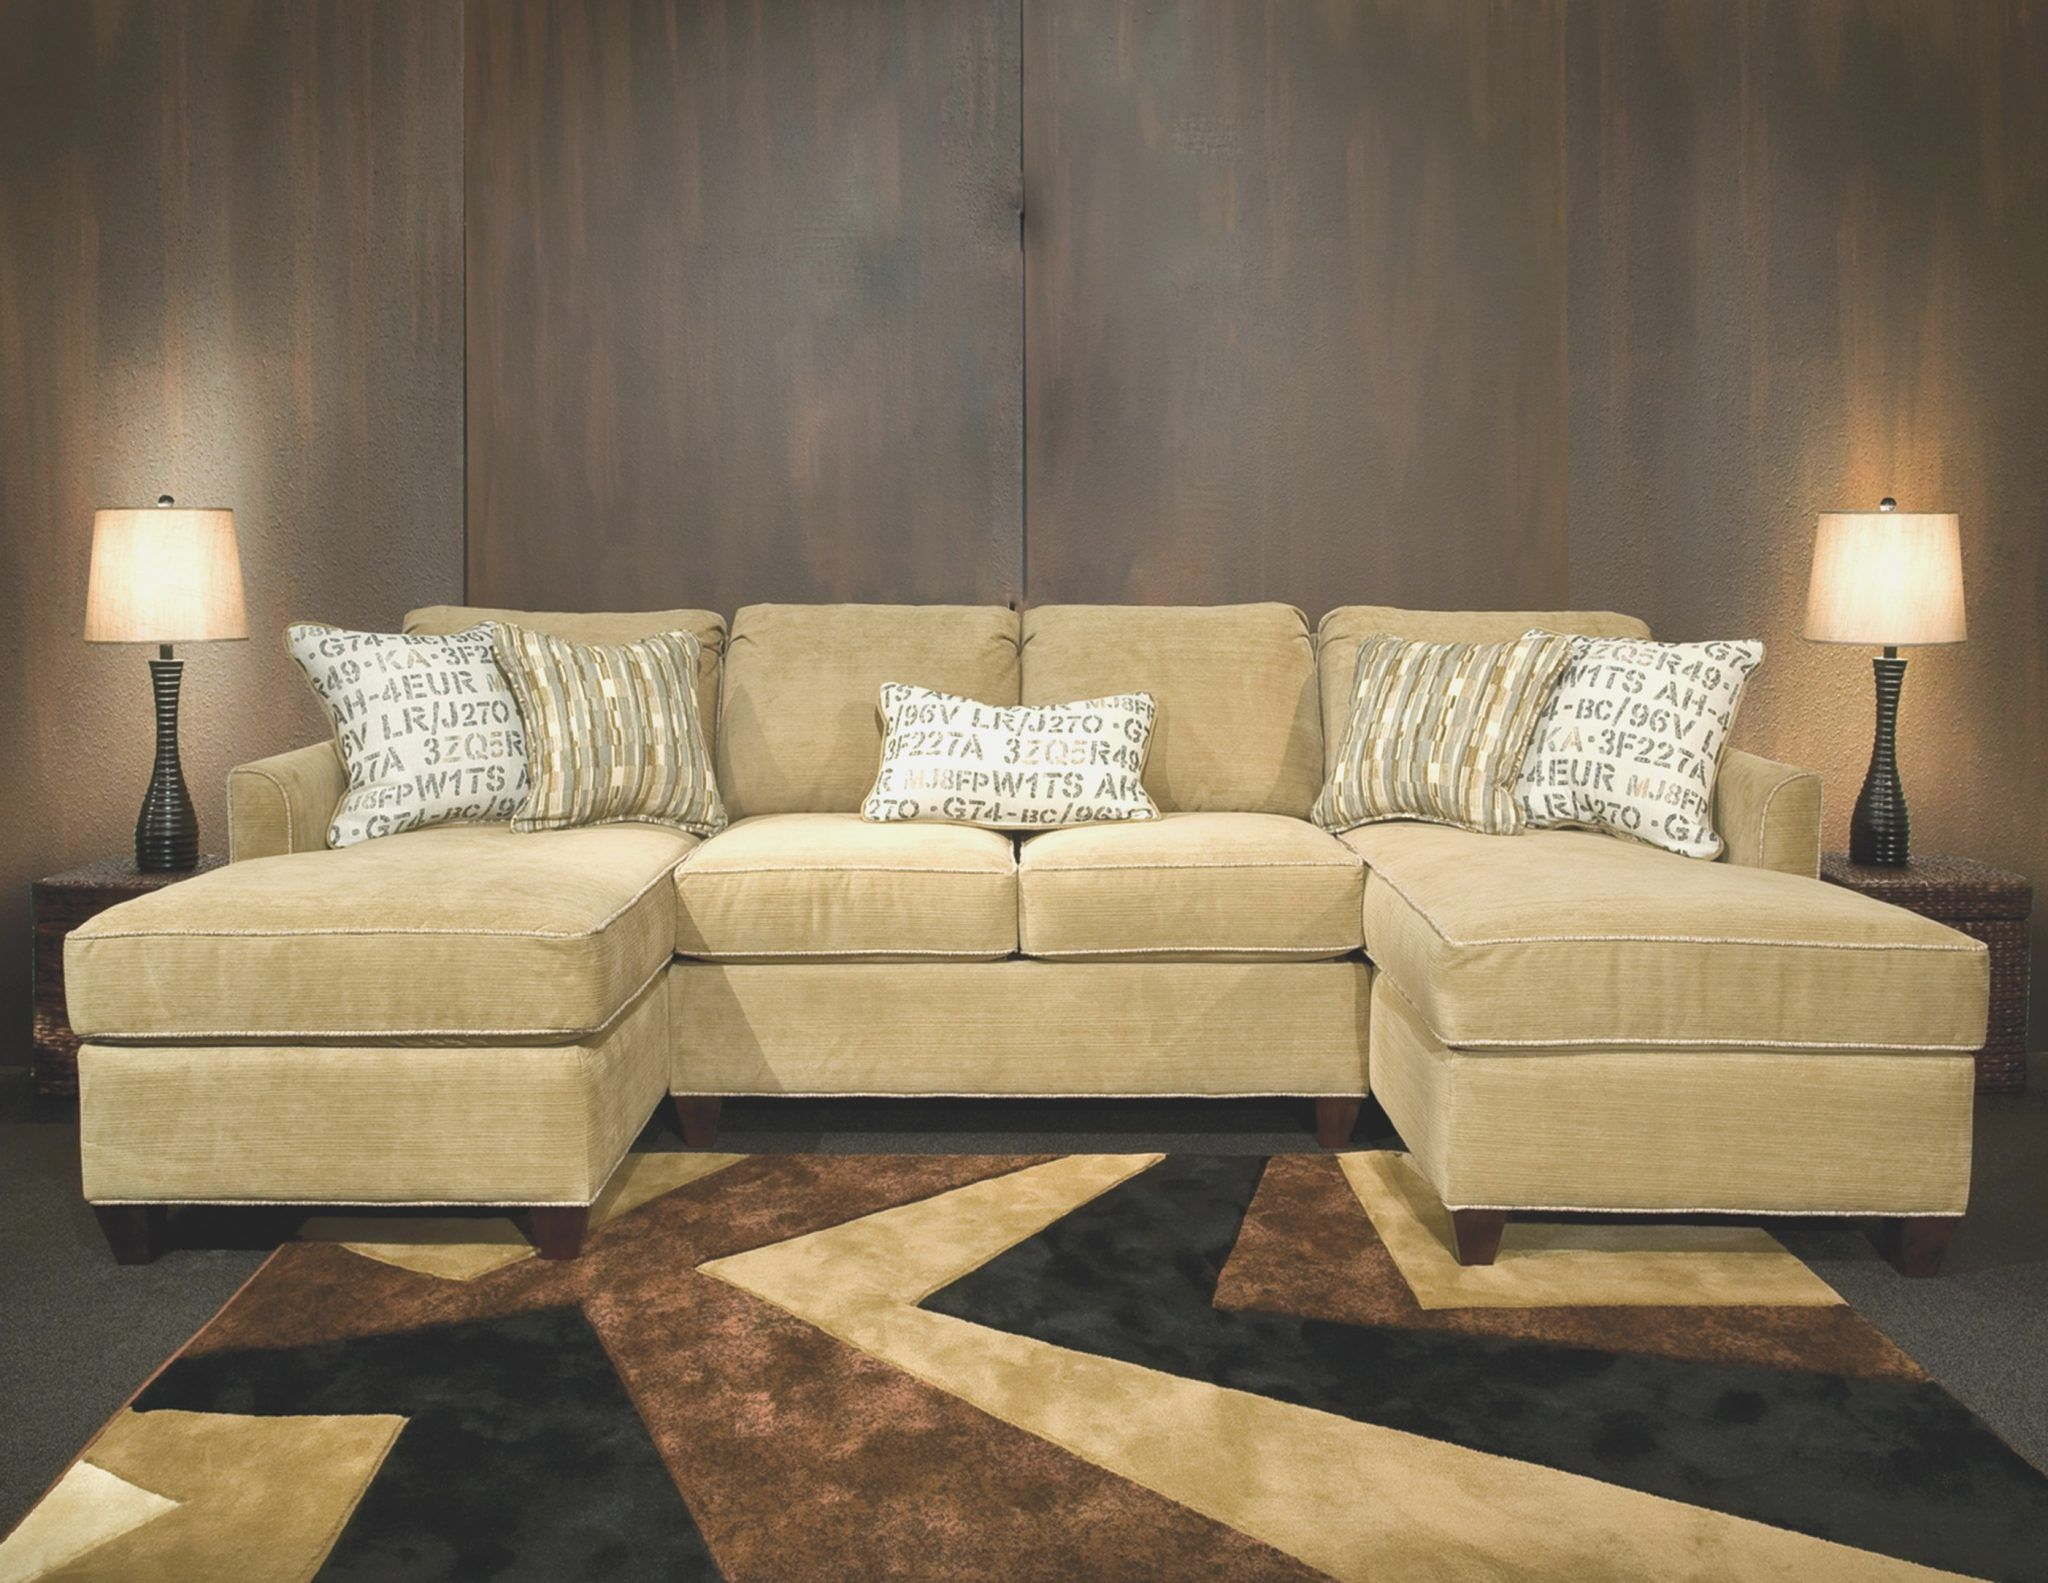 Rooms To Go Sectional Sofa   Johannesburg Sectional Sofa Rooms To Go,  Microfiber Sectional Sofa Rooms To Go, Rooms To Go Gray Leather Sectional  Sofa, ...